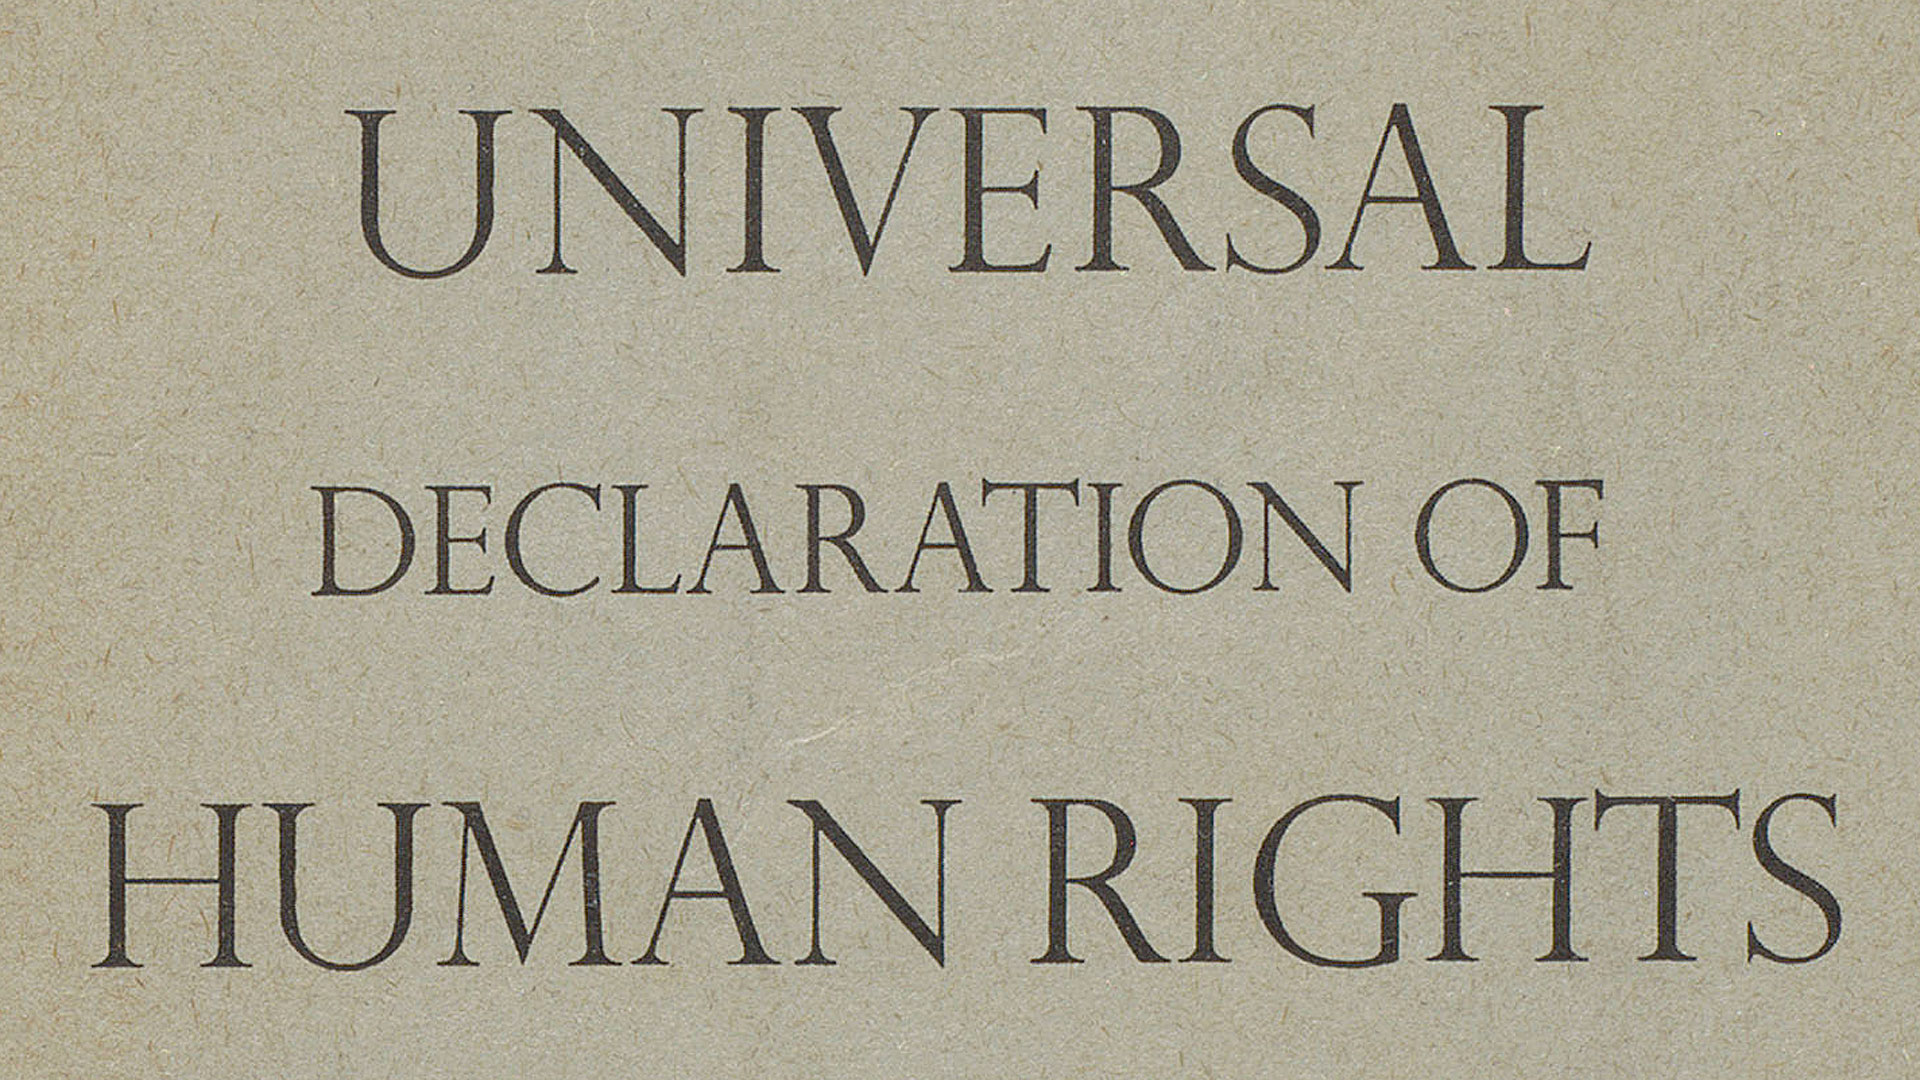 Human rights legislation